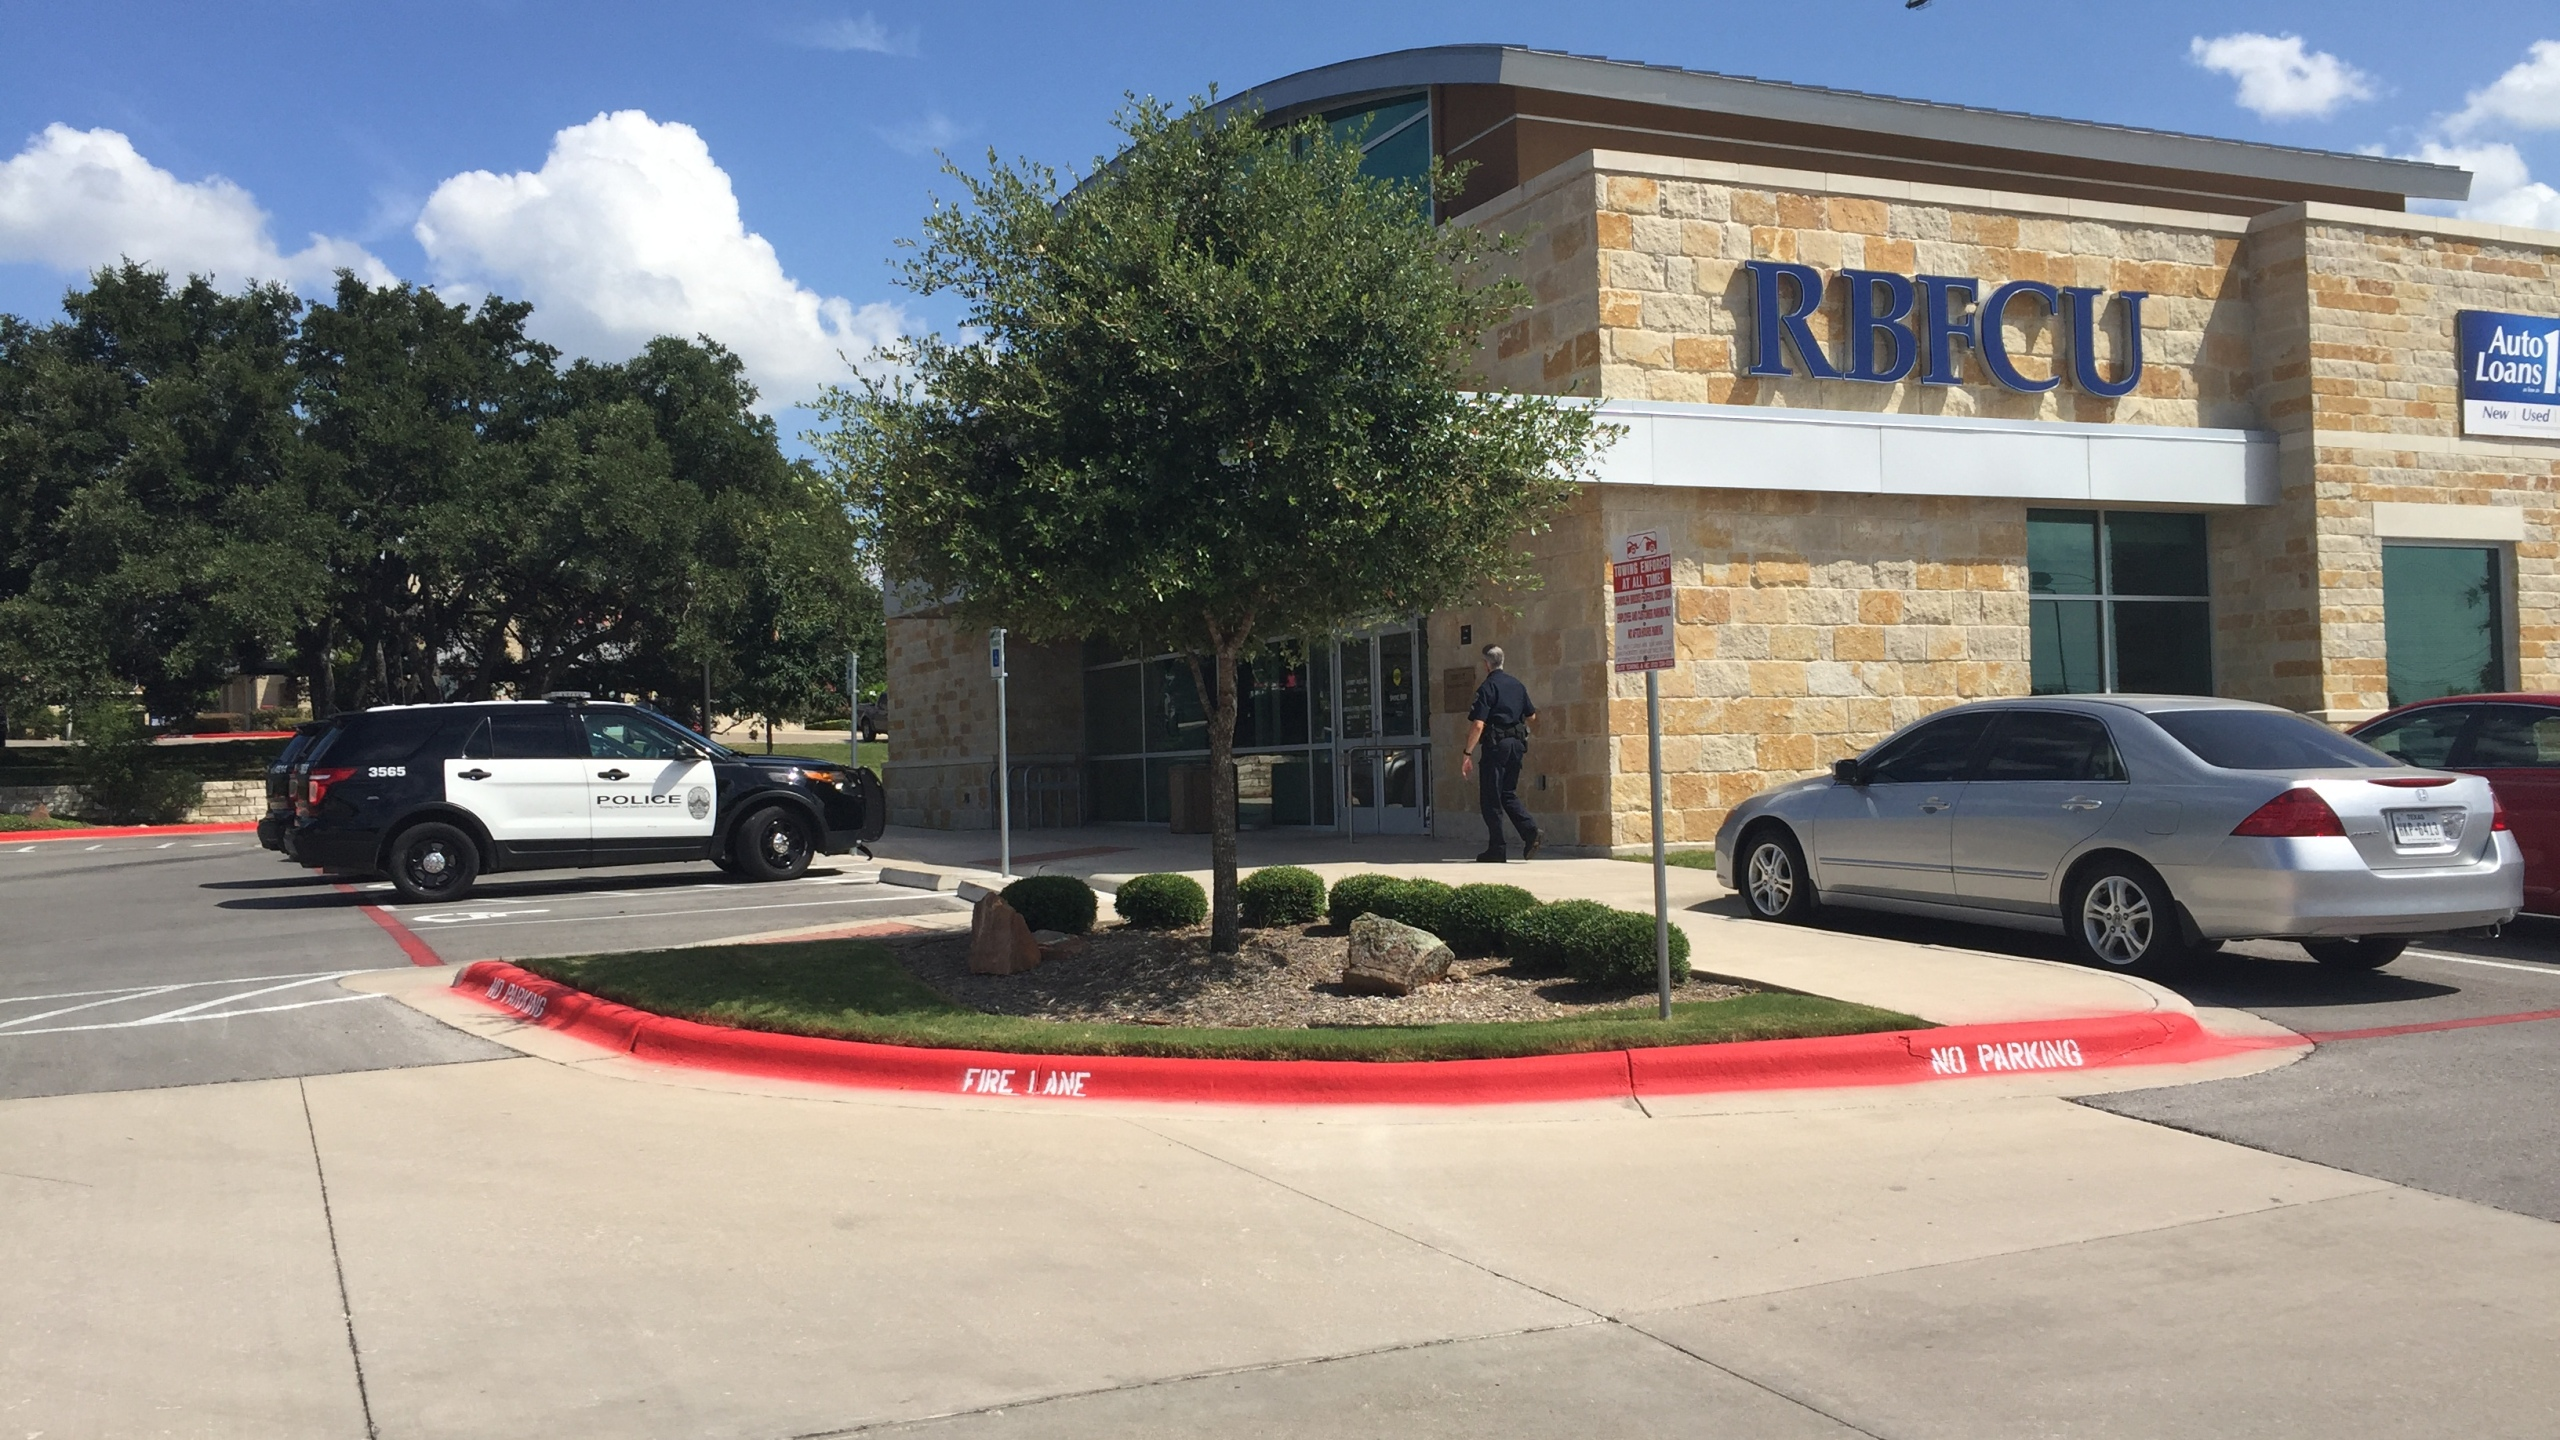 Police looking for South Austin RBFCU robber._310011